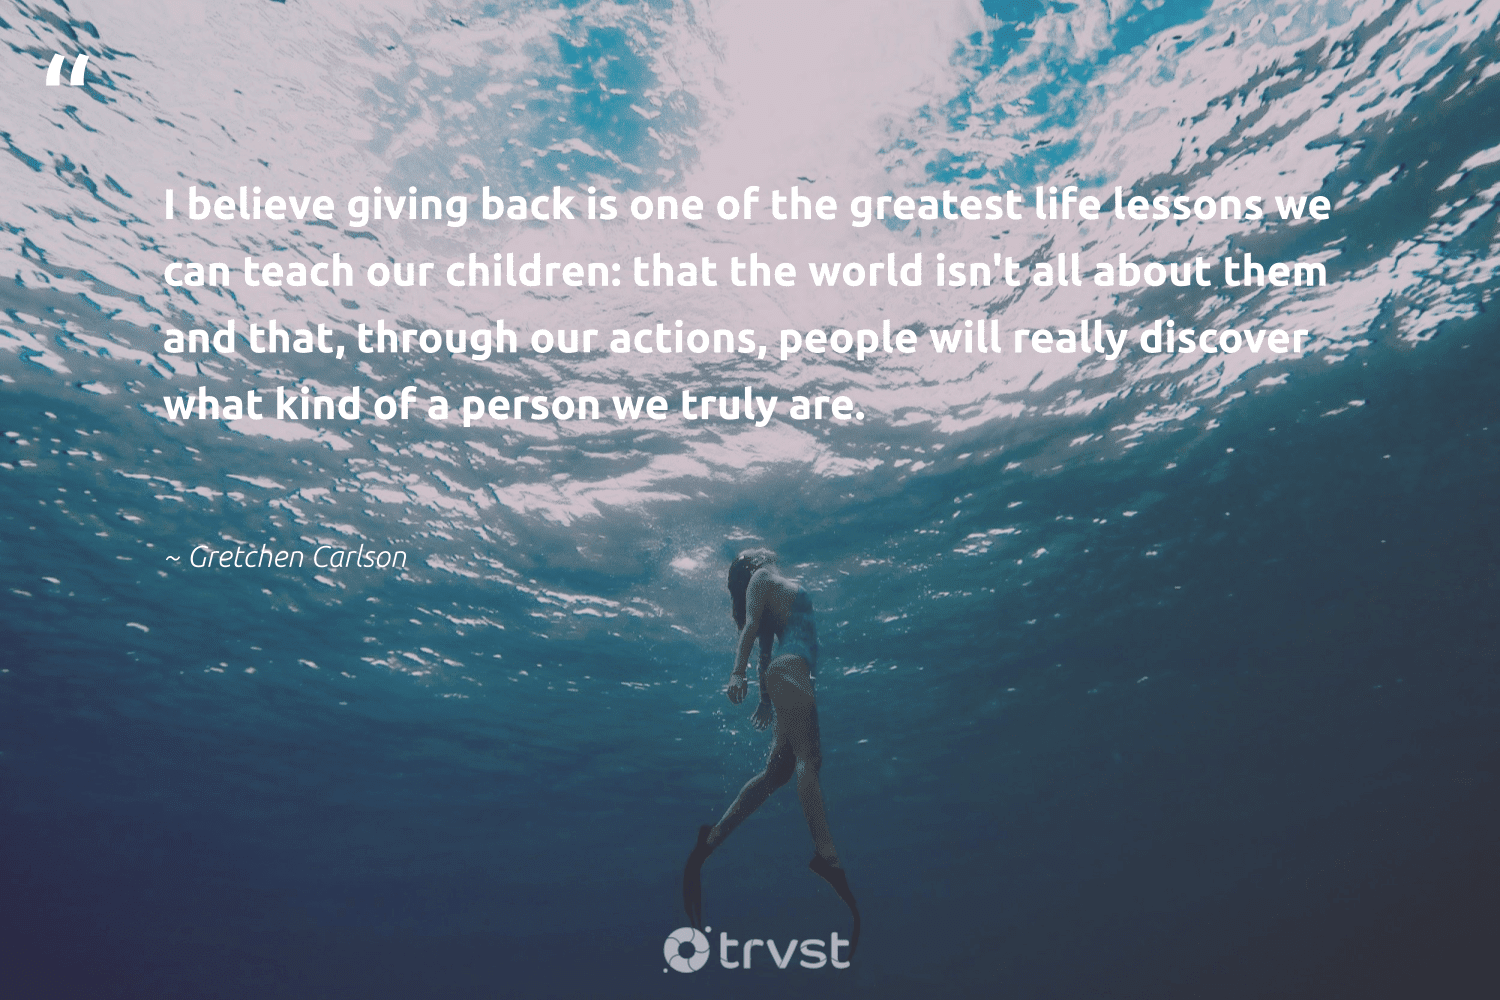 """""""I believe giving back is one of the greatest life lessons we can teach our children: that the world isn't all about them and that, through our actions, people will really discover what kind of a person we truly are.""""  - Gretchen Carlson #trvst #quotes #givingback #dogood #giveback #togetherwecan #giveforthefuture #bethechange #socialgood #itscooltobekind #changemakers #dotherightthing"""